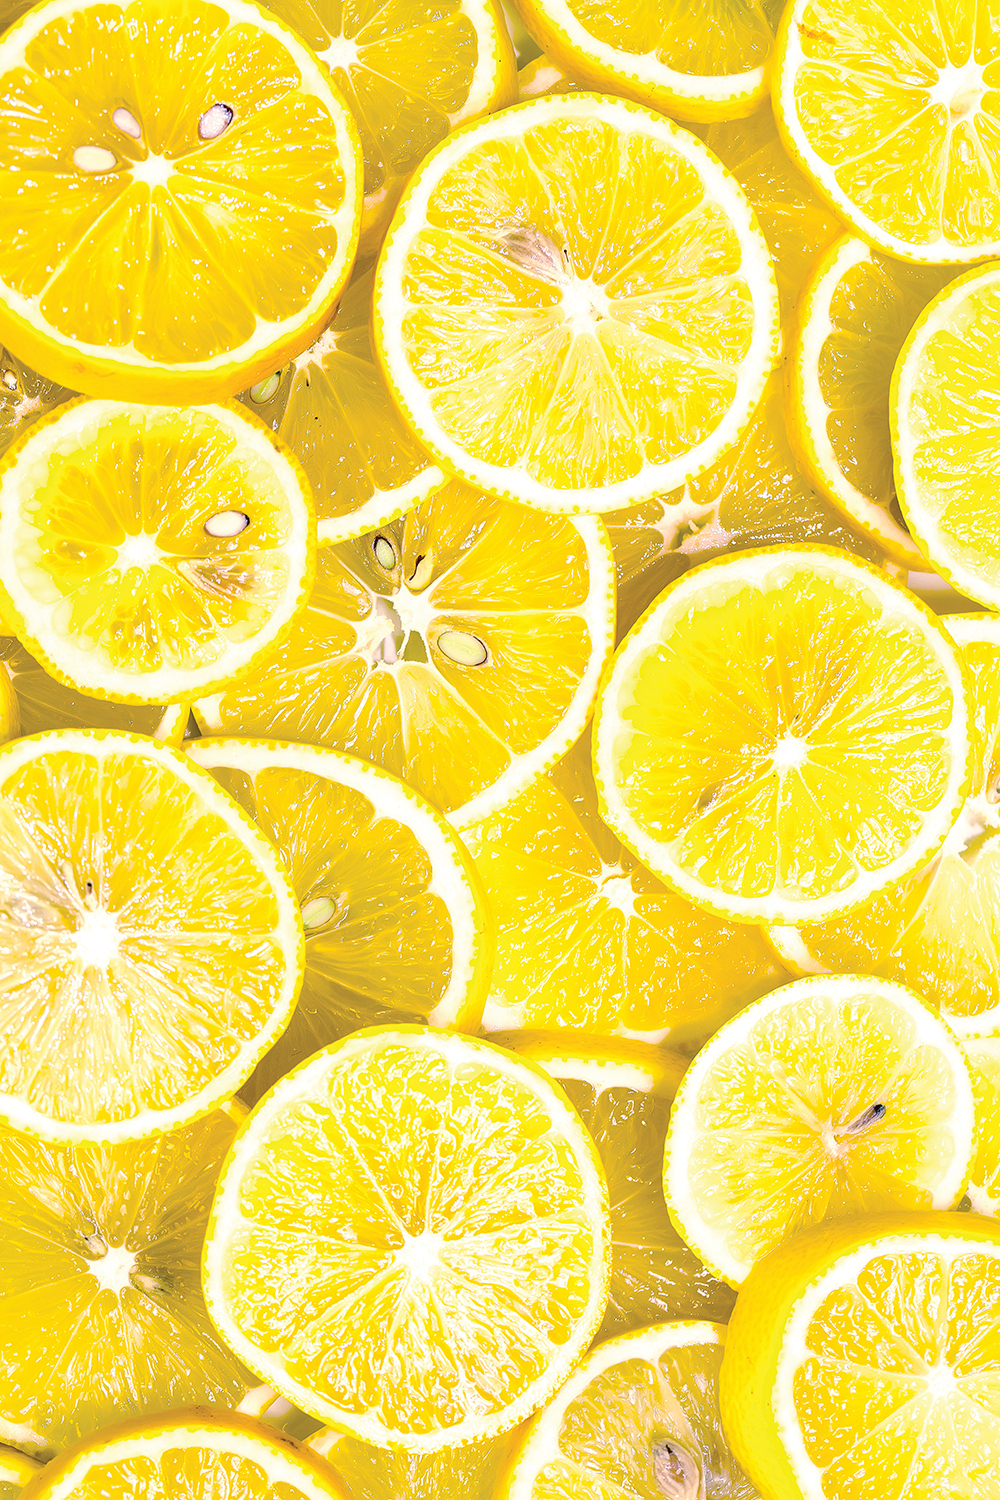 Photo of a pile of yellow lemon slices